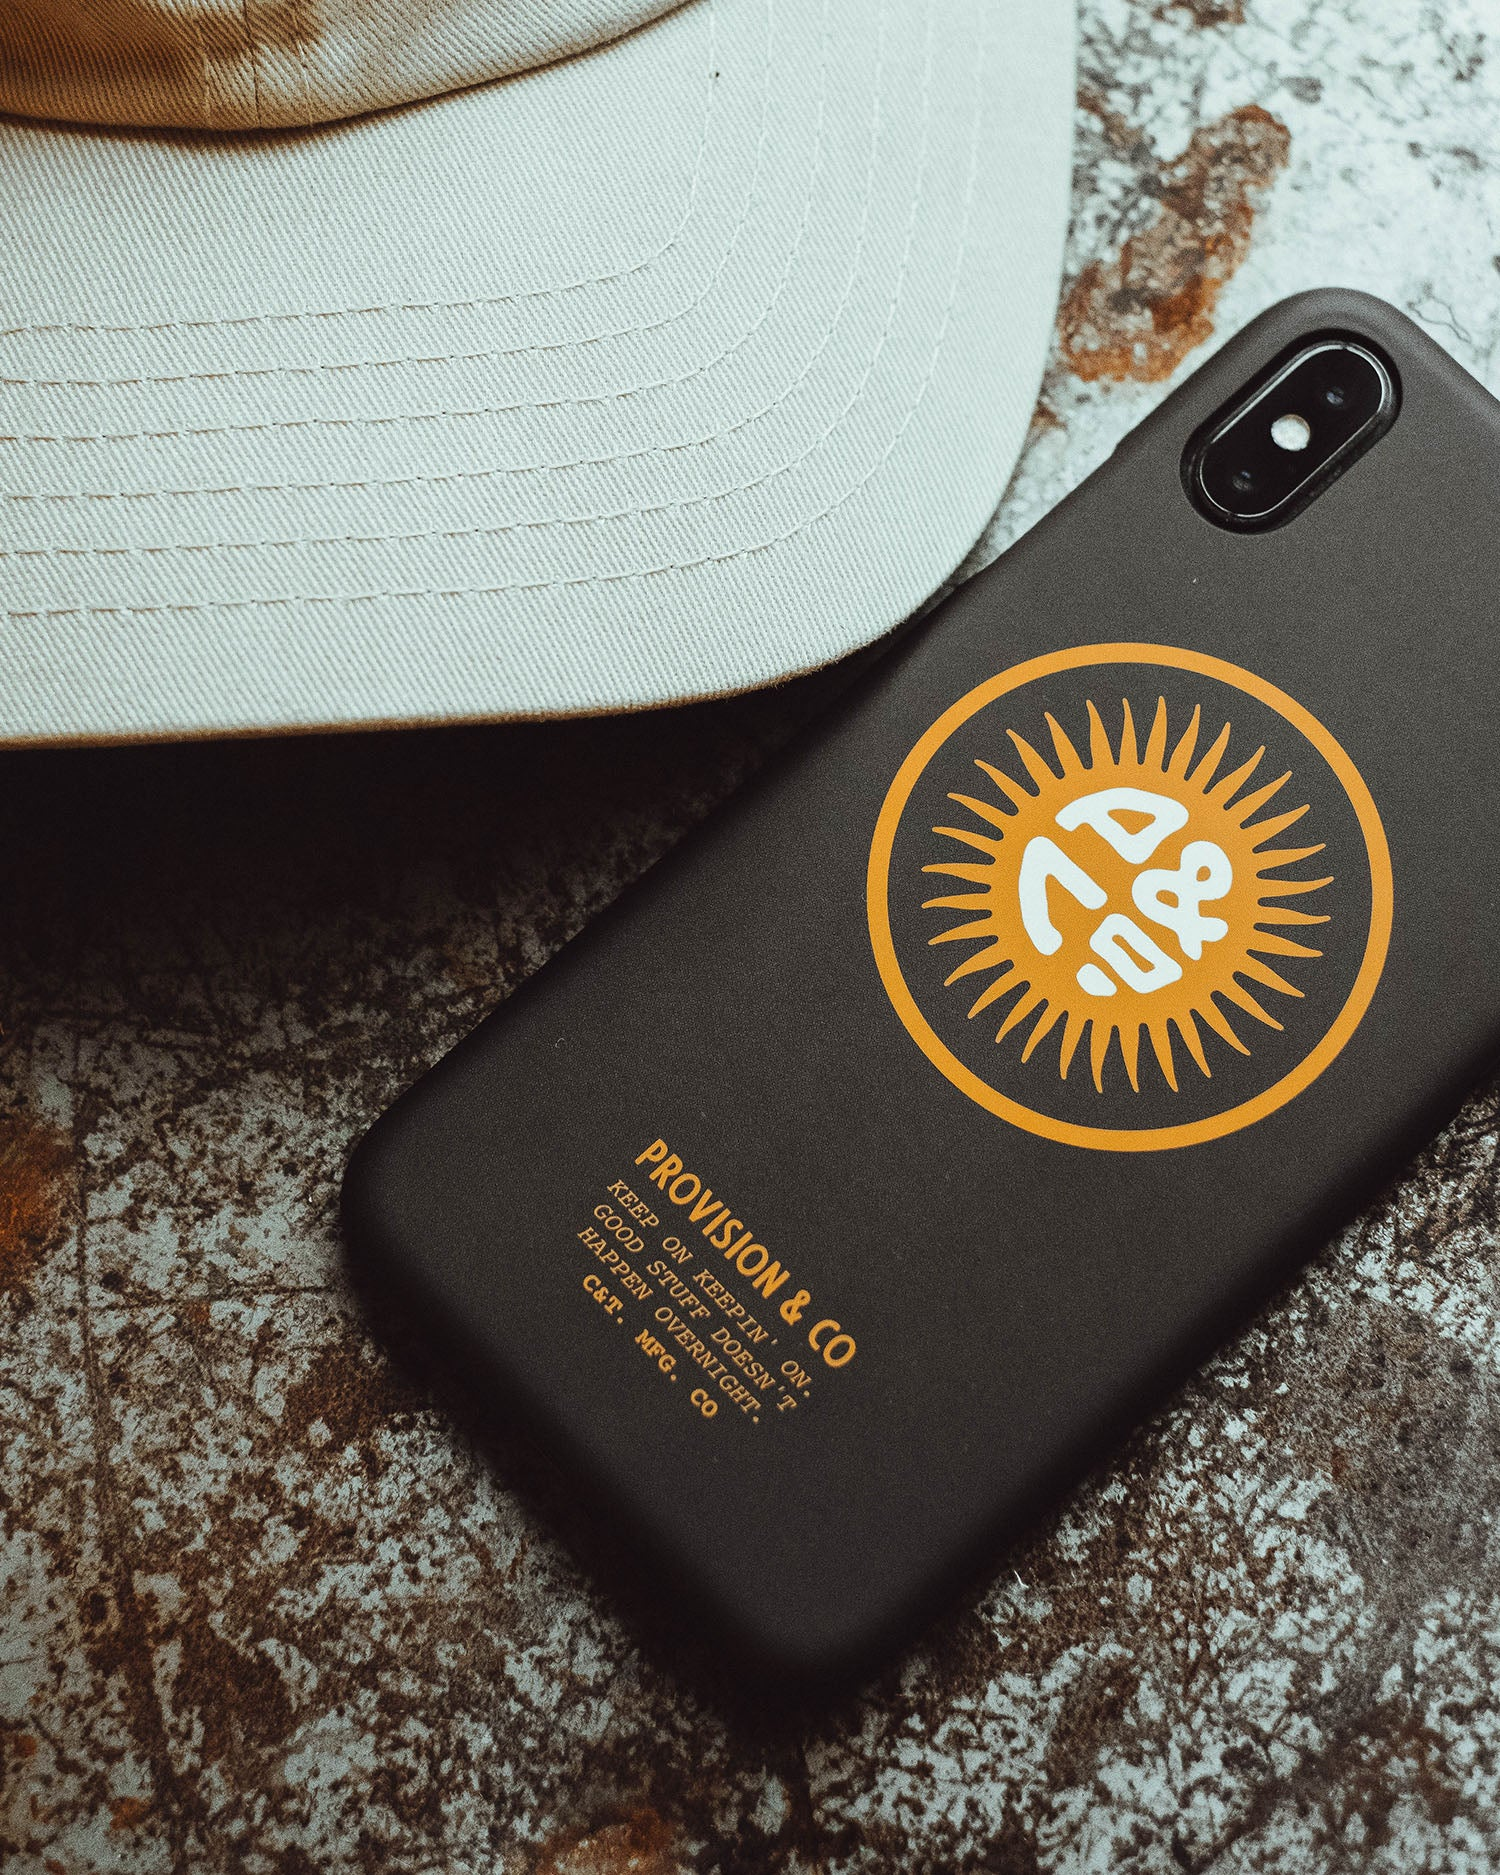 Keepin' On Black iphone case for iphone 7/8/X